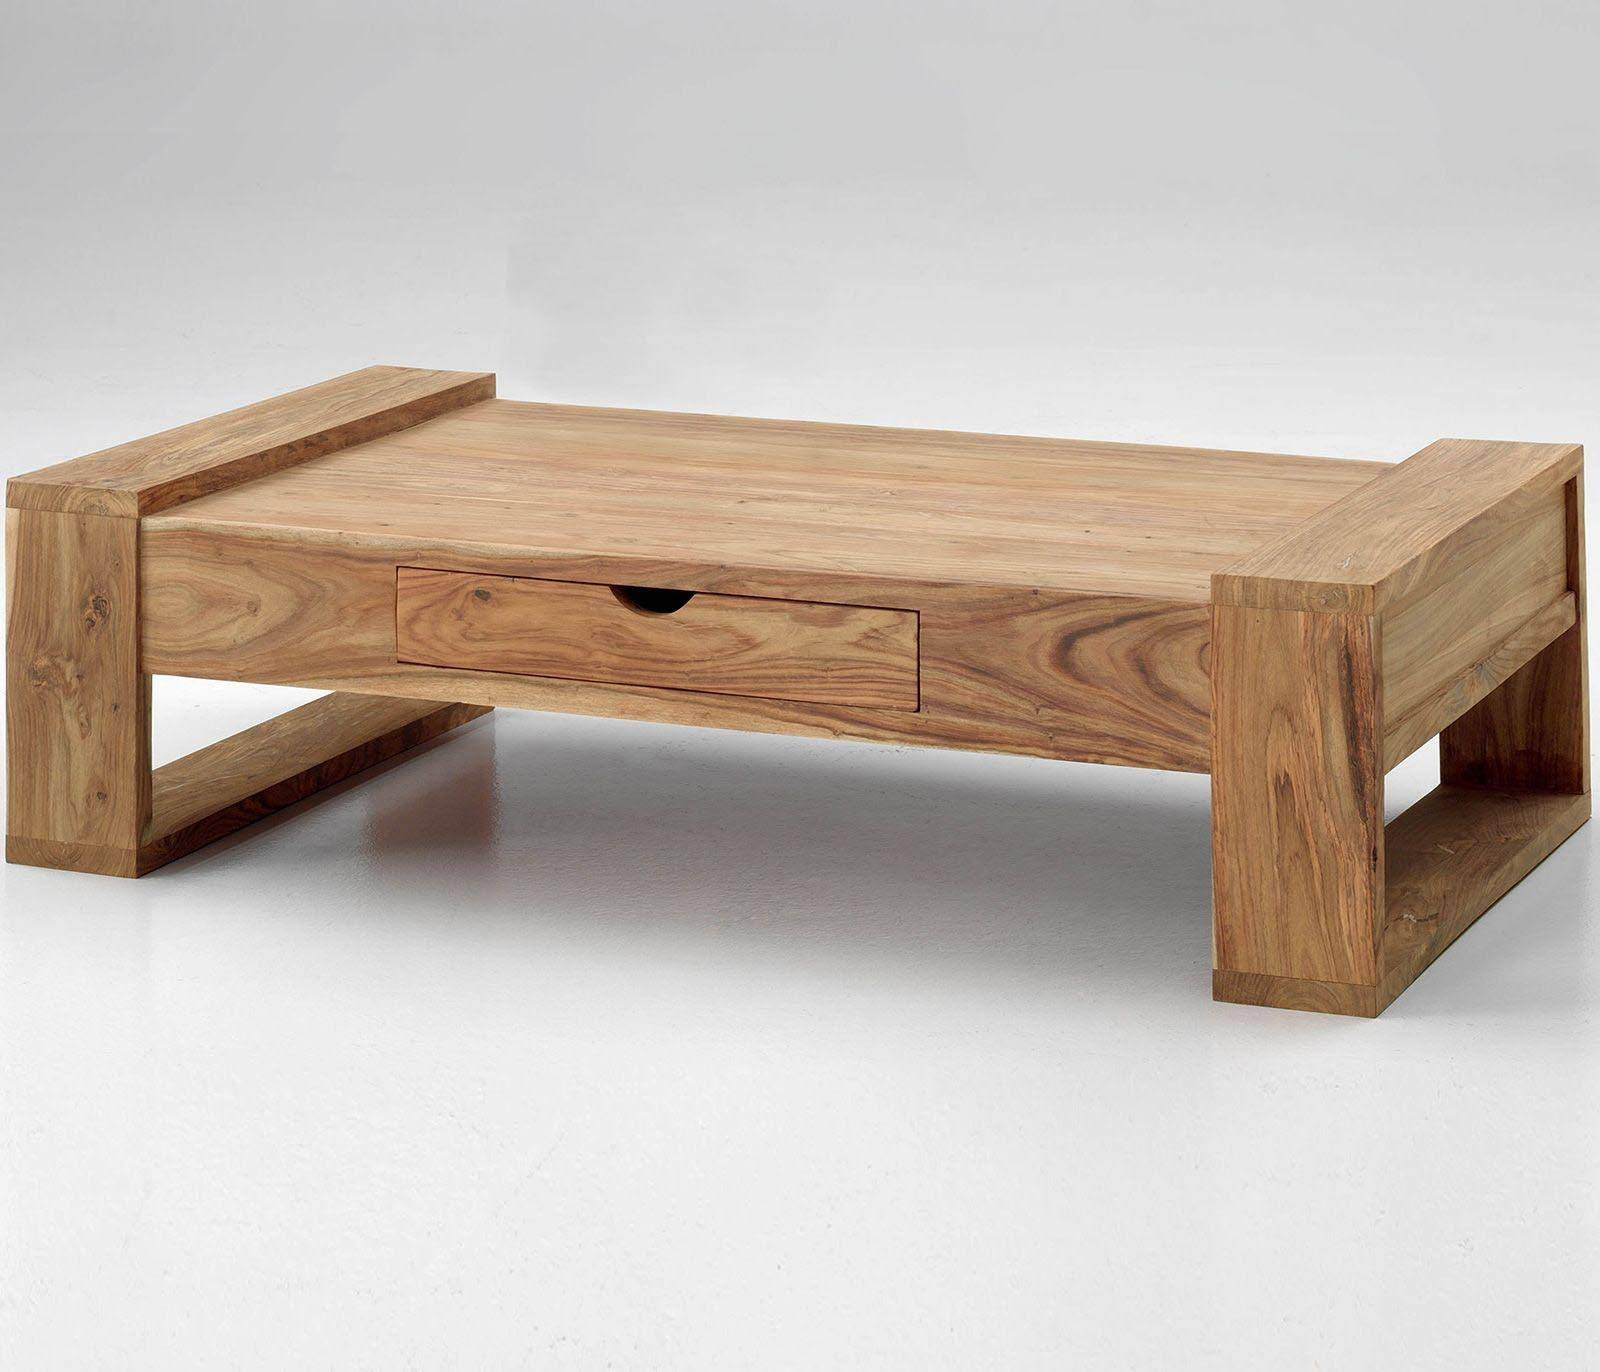 Low Coffee Table Wood | Coffee Table Design Ideas with Low Wood Coffee Tables (Image 8 of 15)